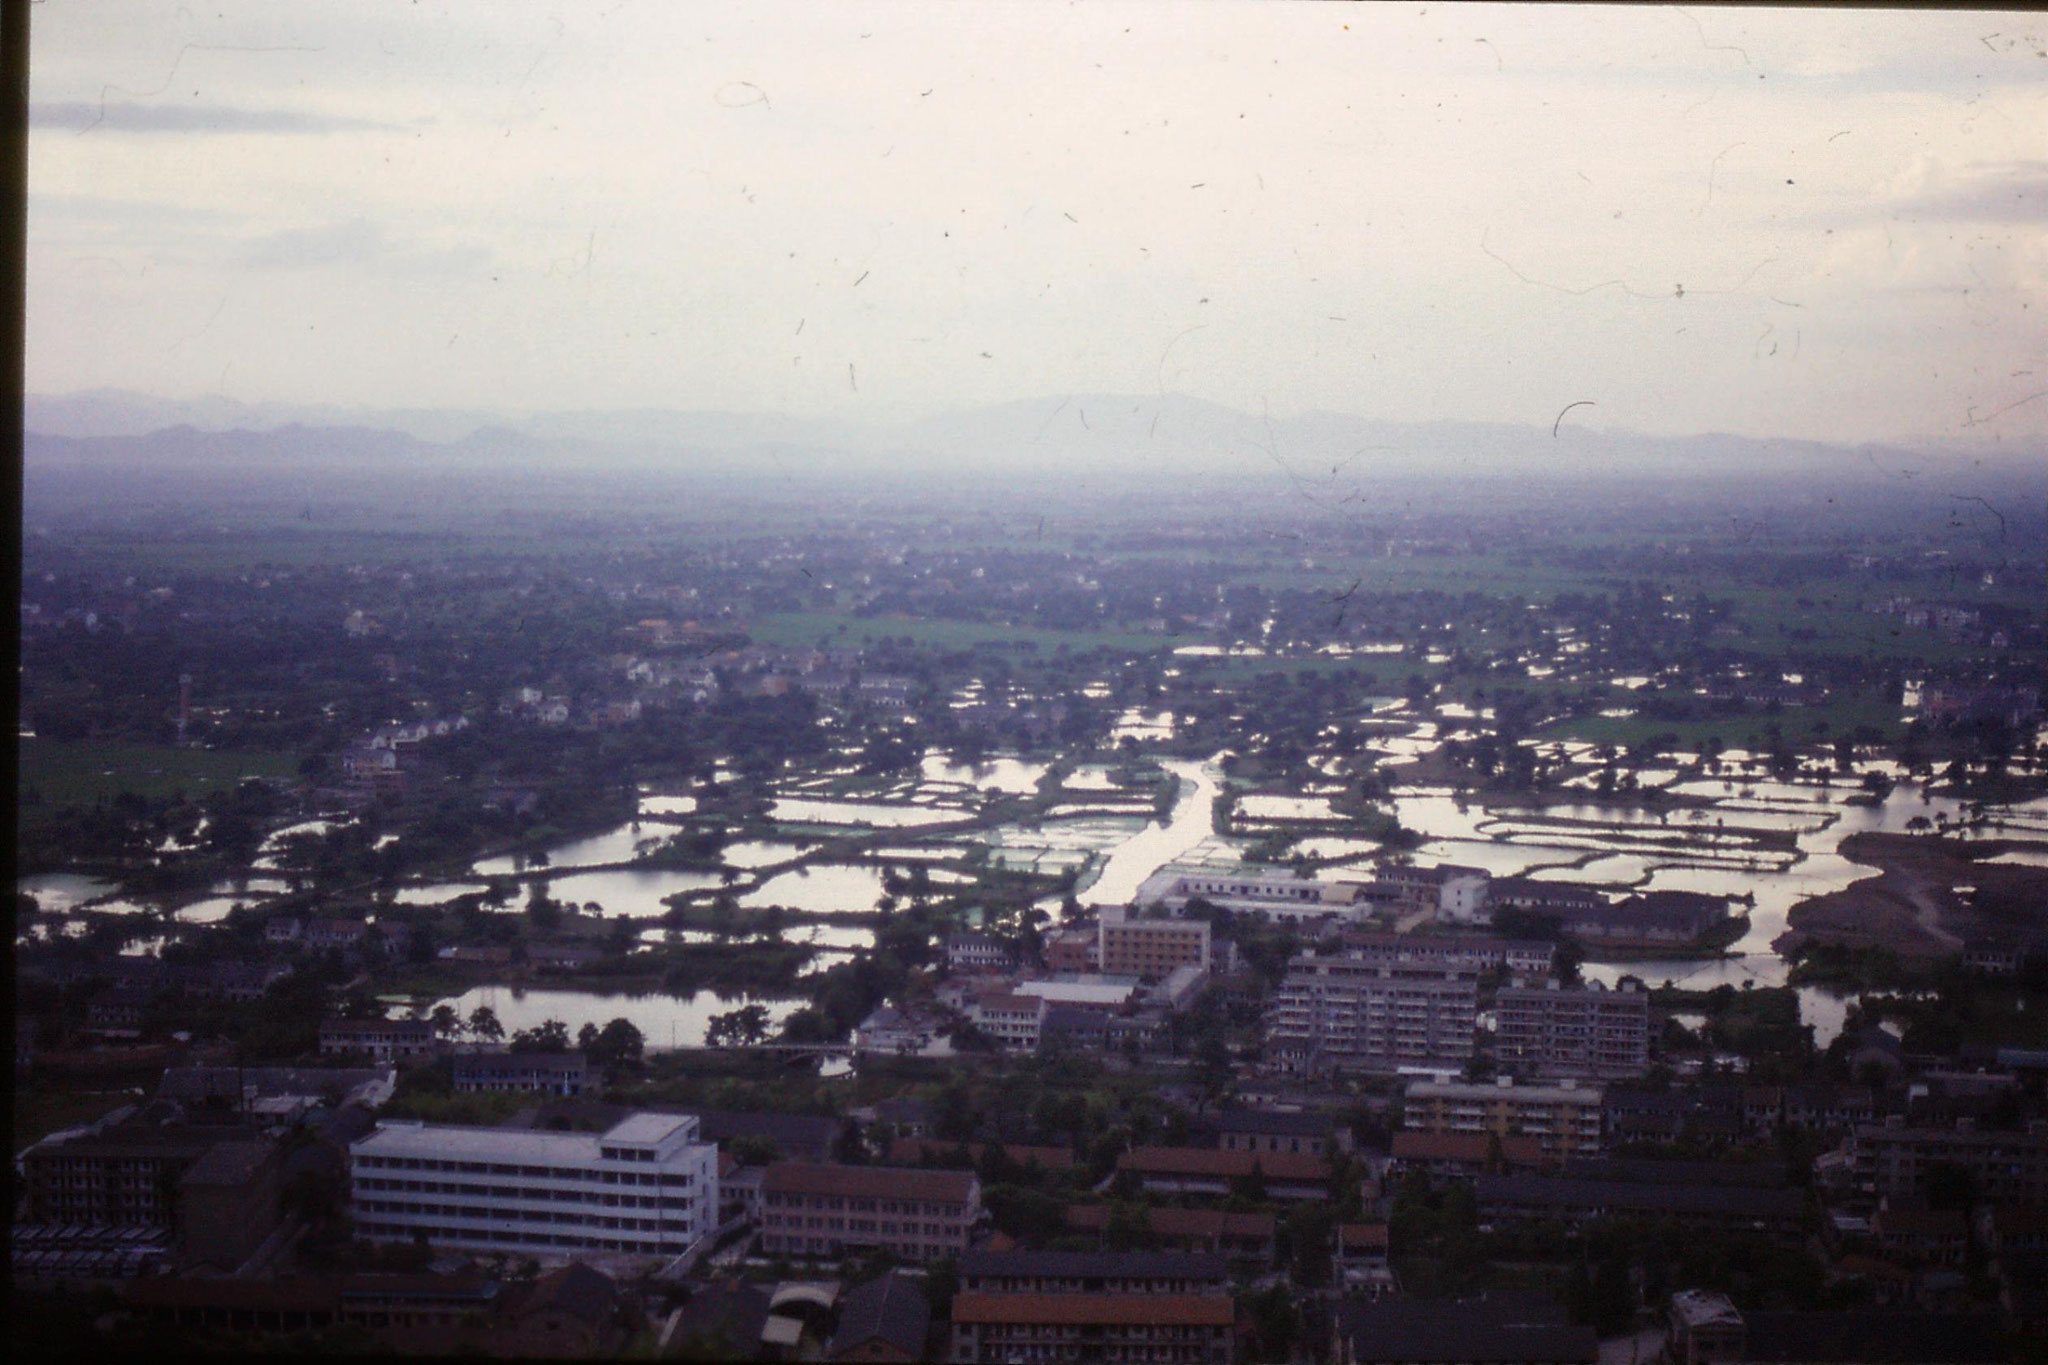 13/6/1989: 18: view from Lao He hill